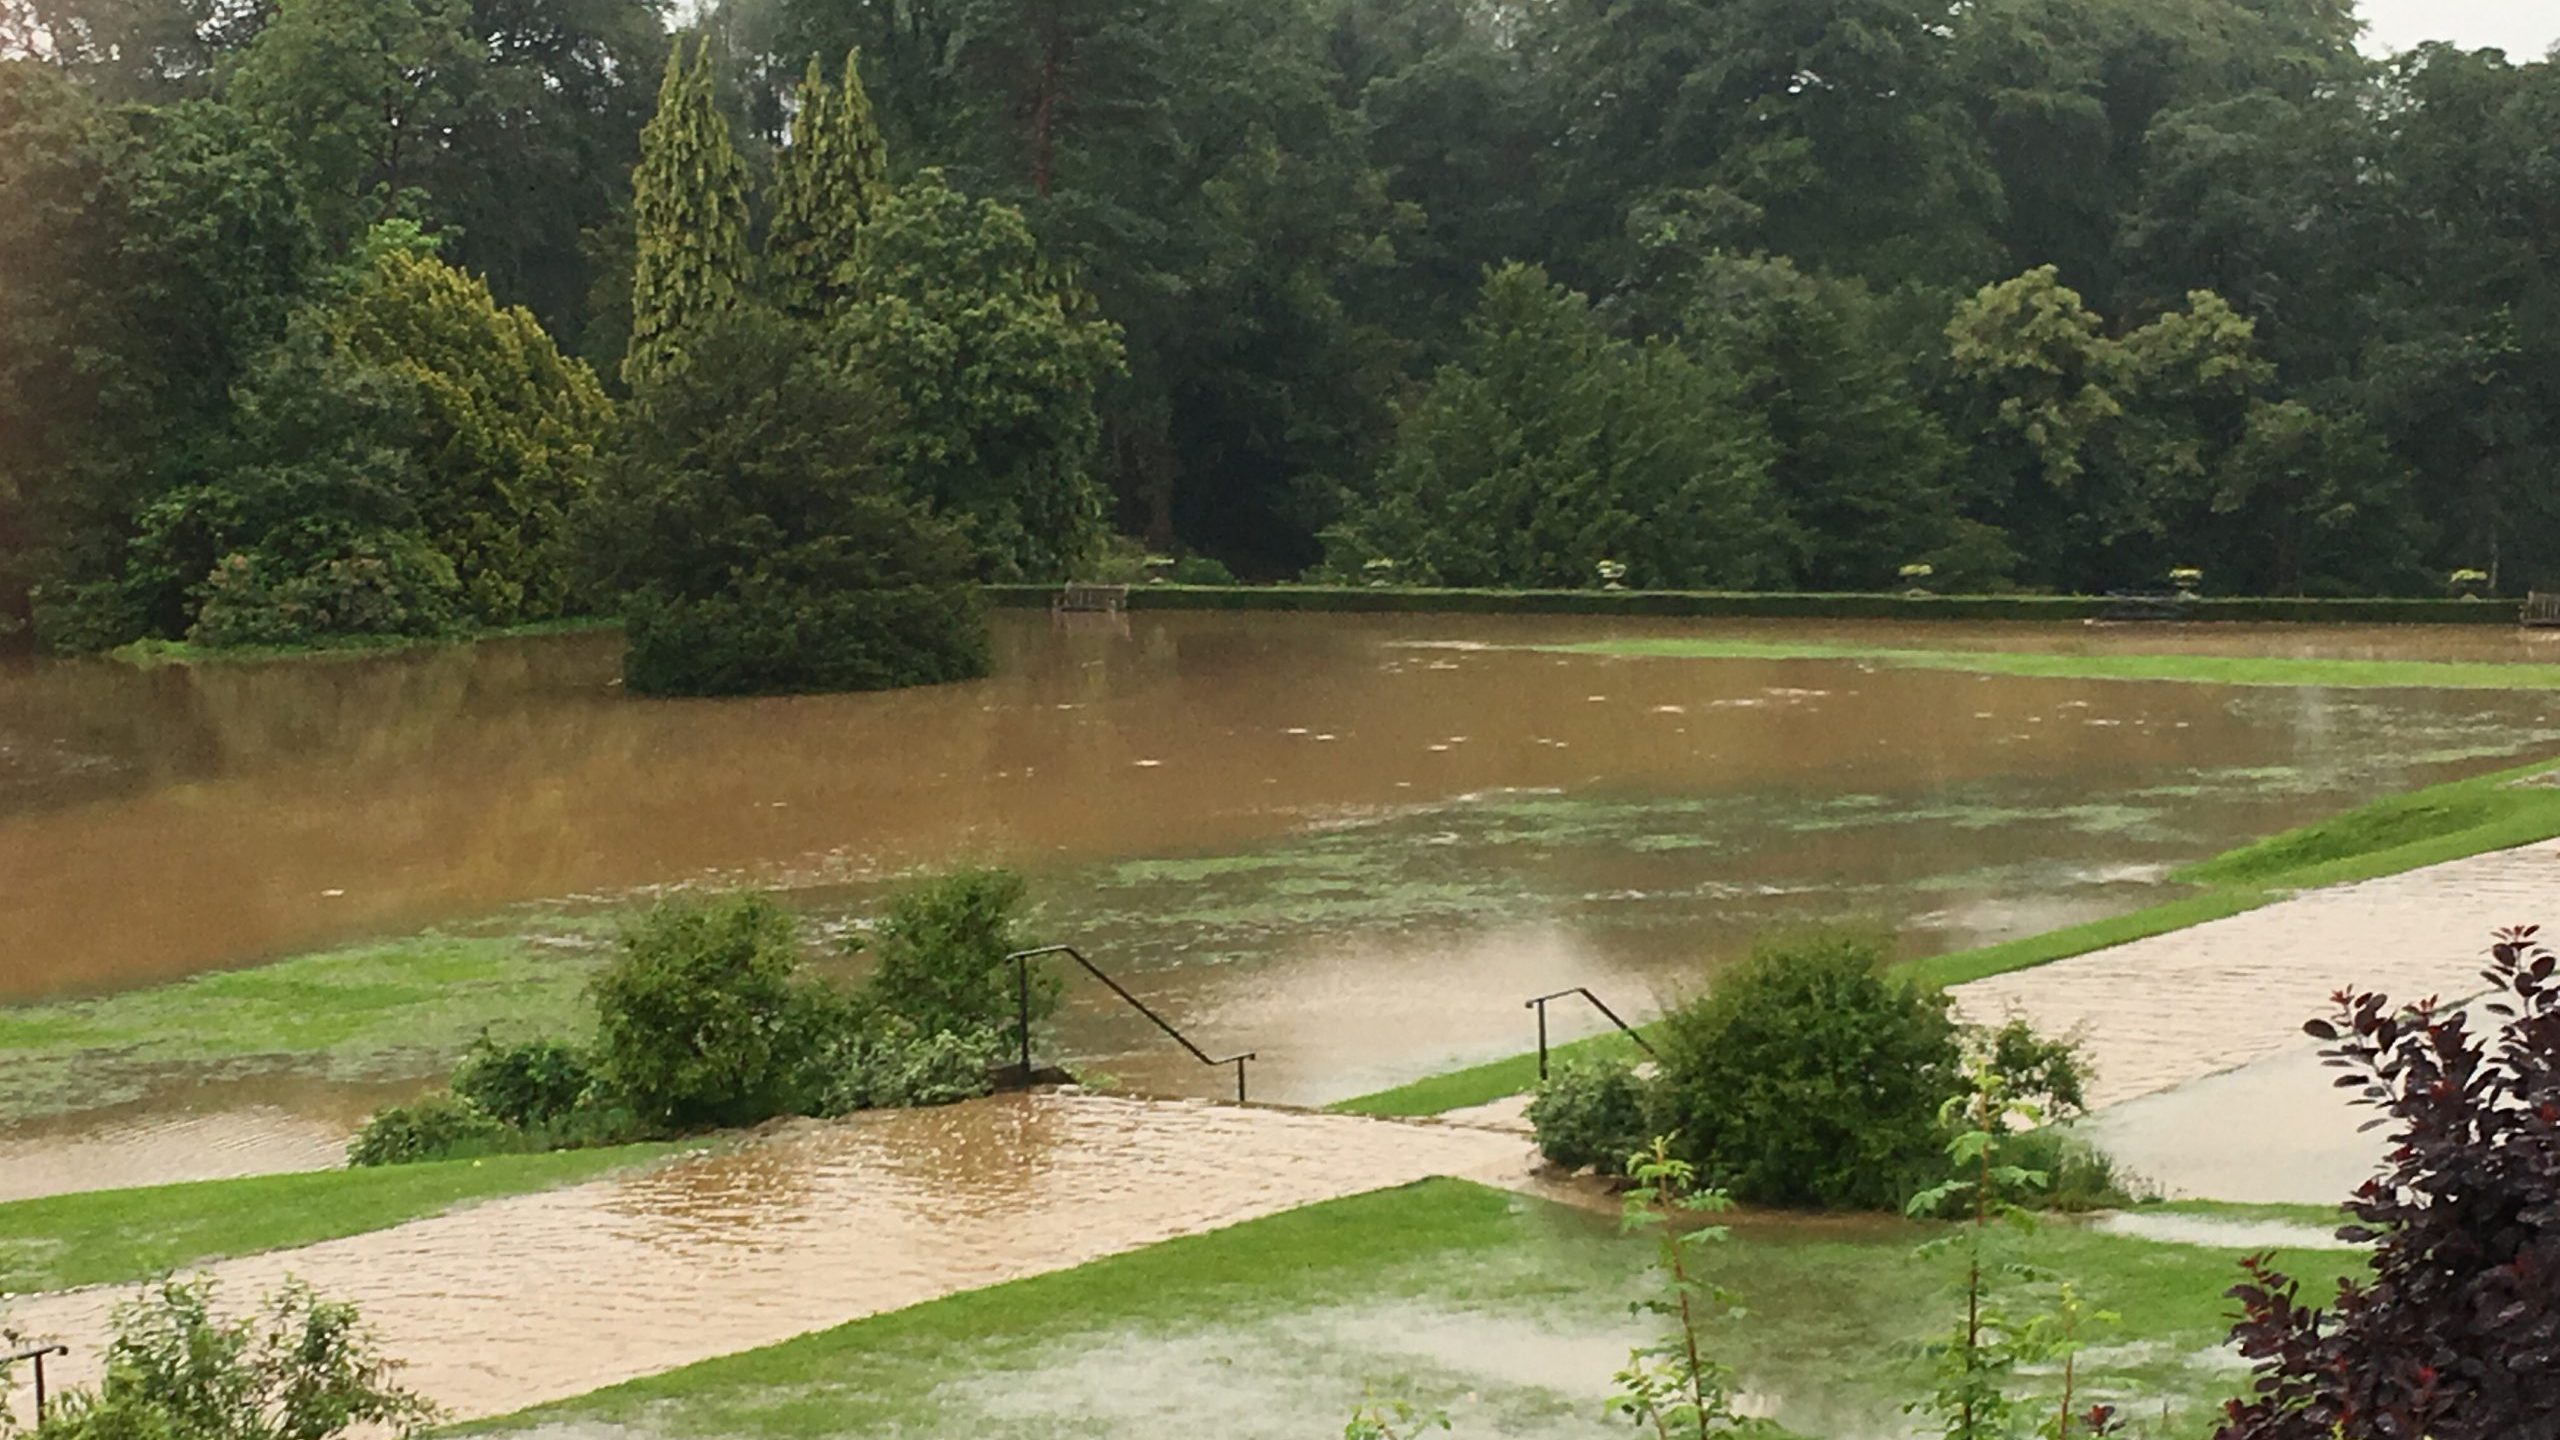 Flooding at Lyme Park, Cheshire, in July 2019